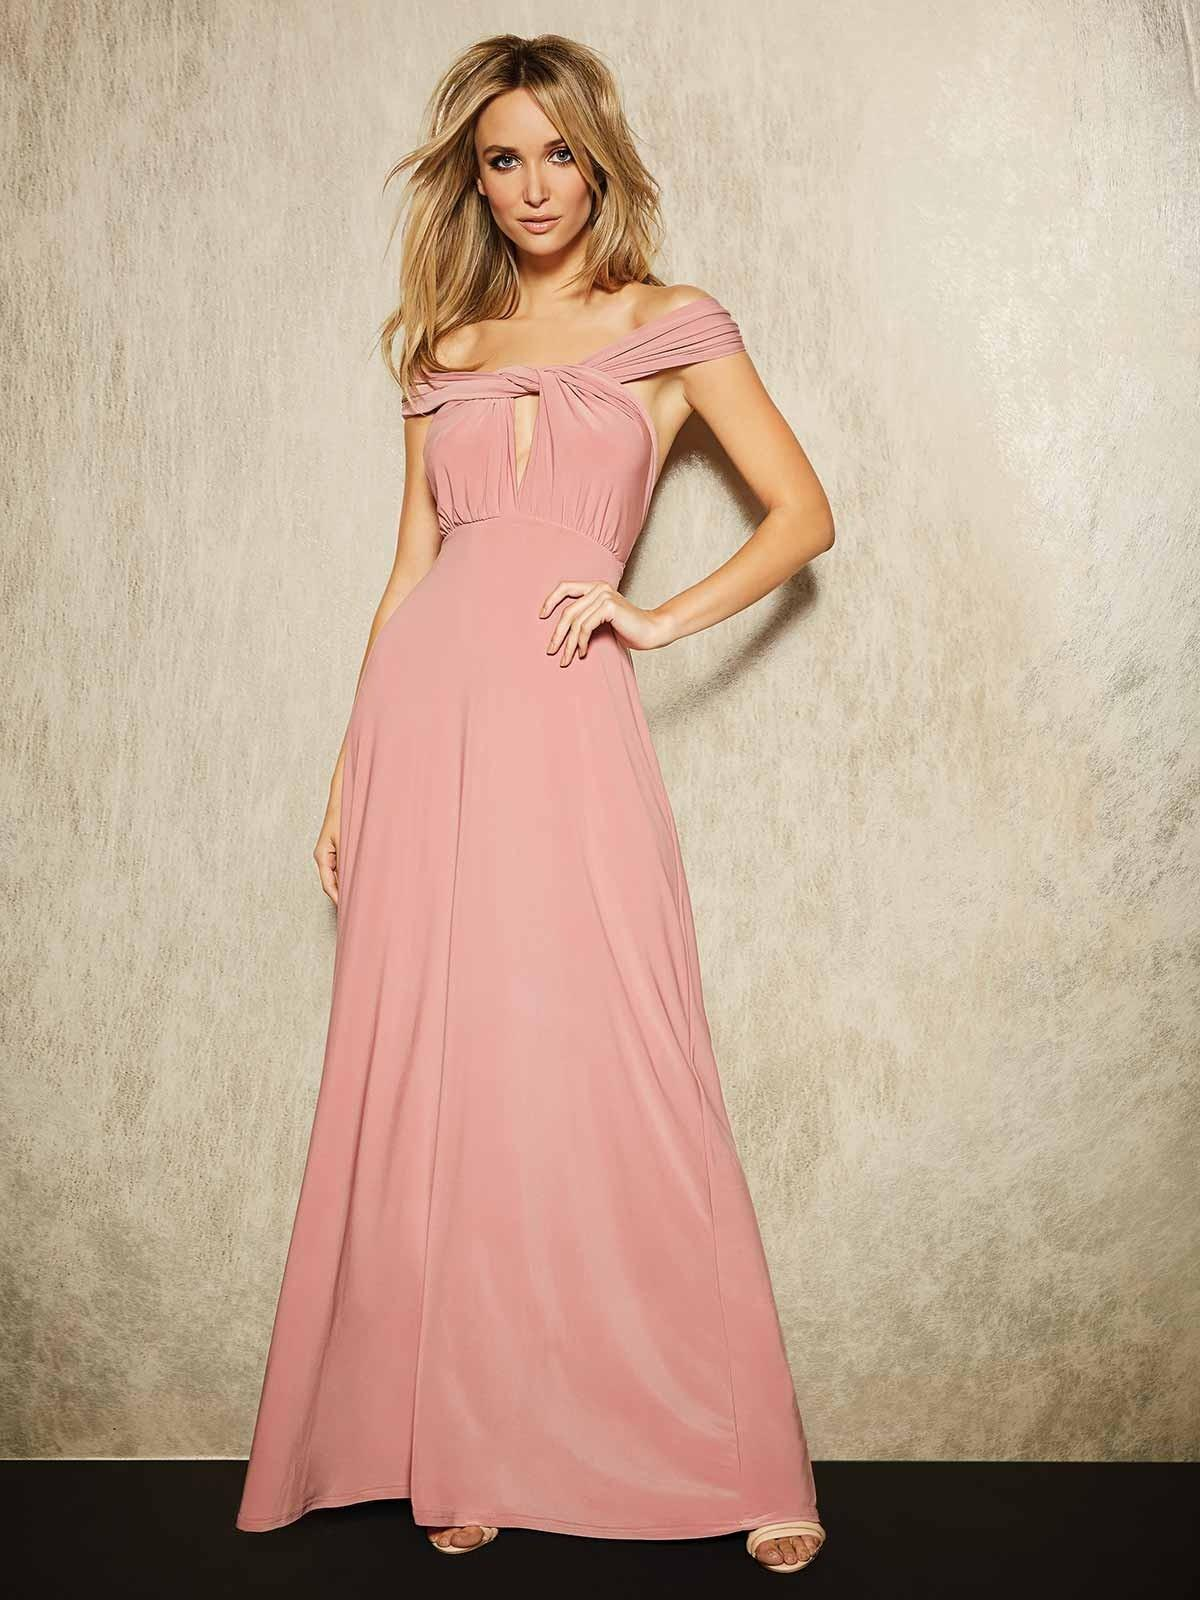 99af9beacc Womens ENVY Pink Multiway Maxi Dress | Peacocks